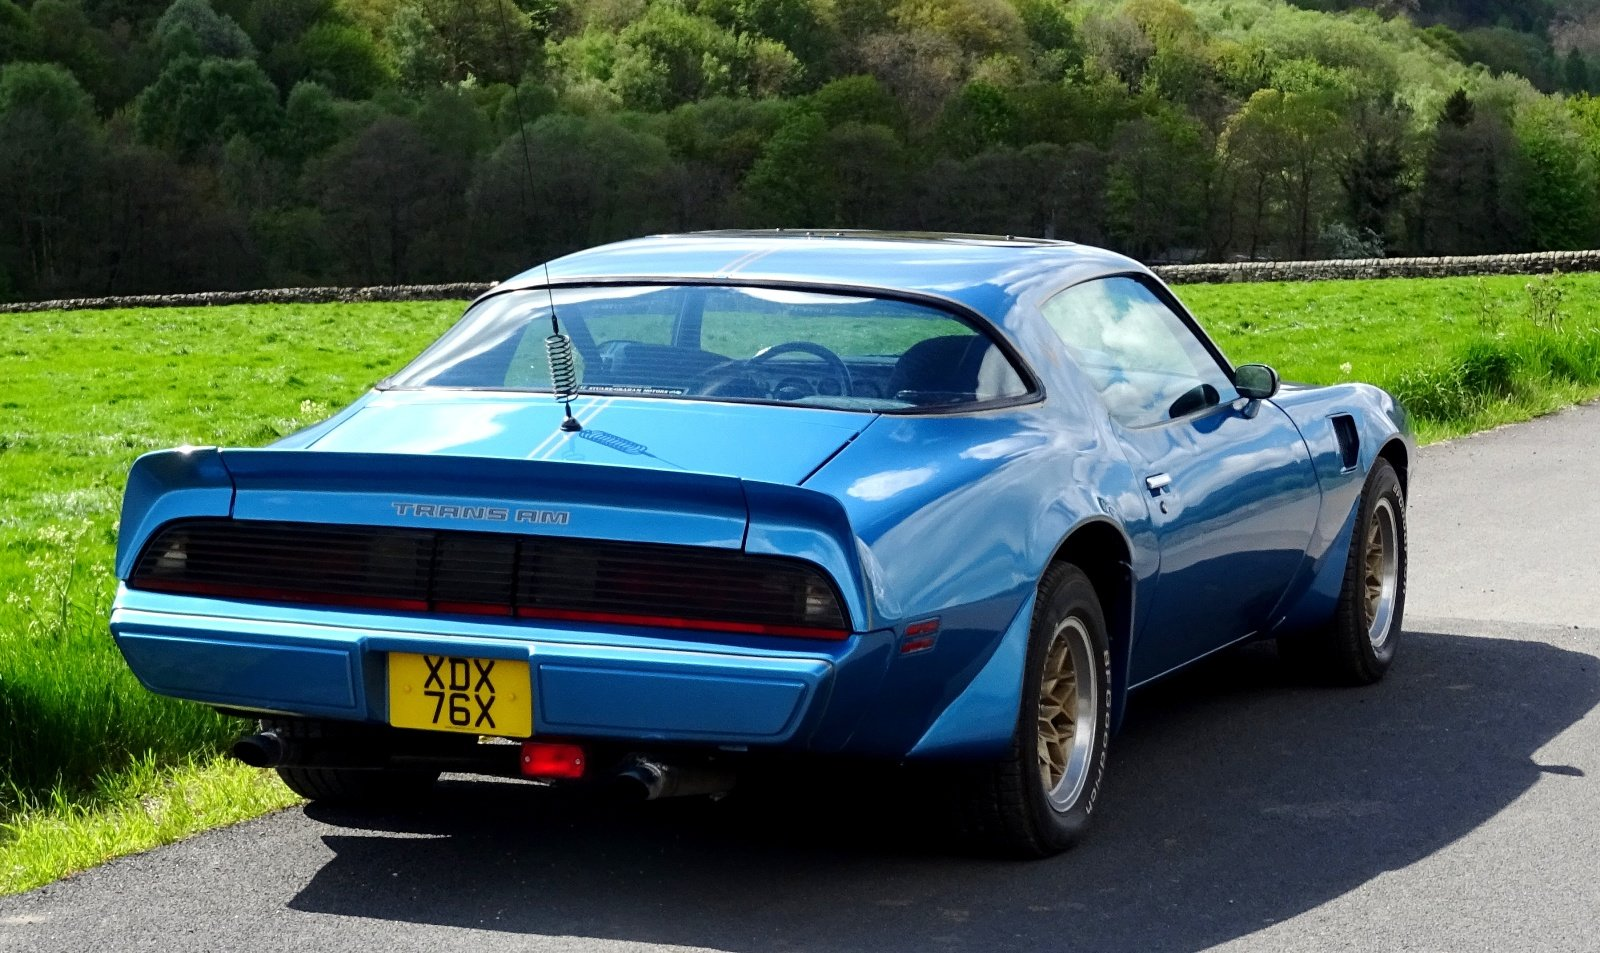 1980 PONTIAC FIREBIRD TRANS AM 6.6 LITRE V8 AMERICAN MUSCLE CAR For Sale (picture 5 of 6)